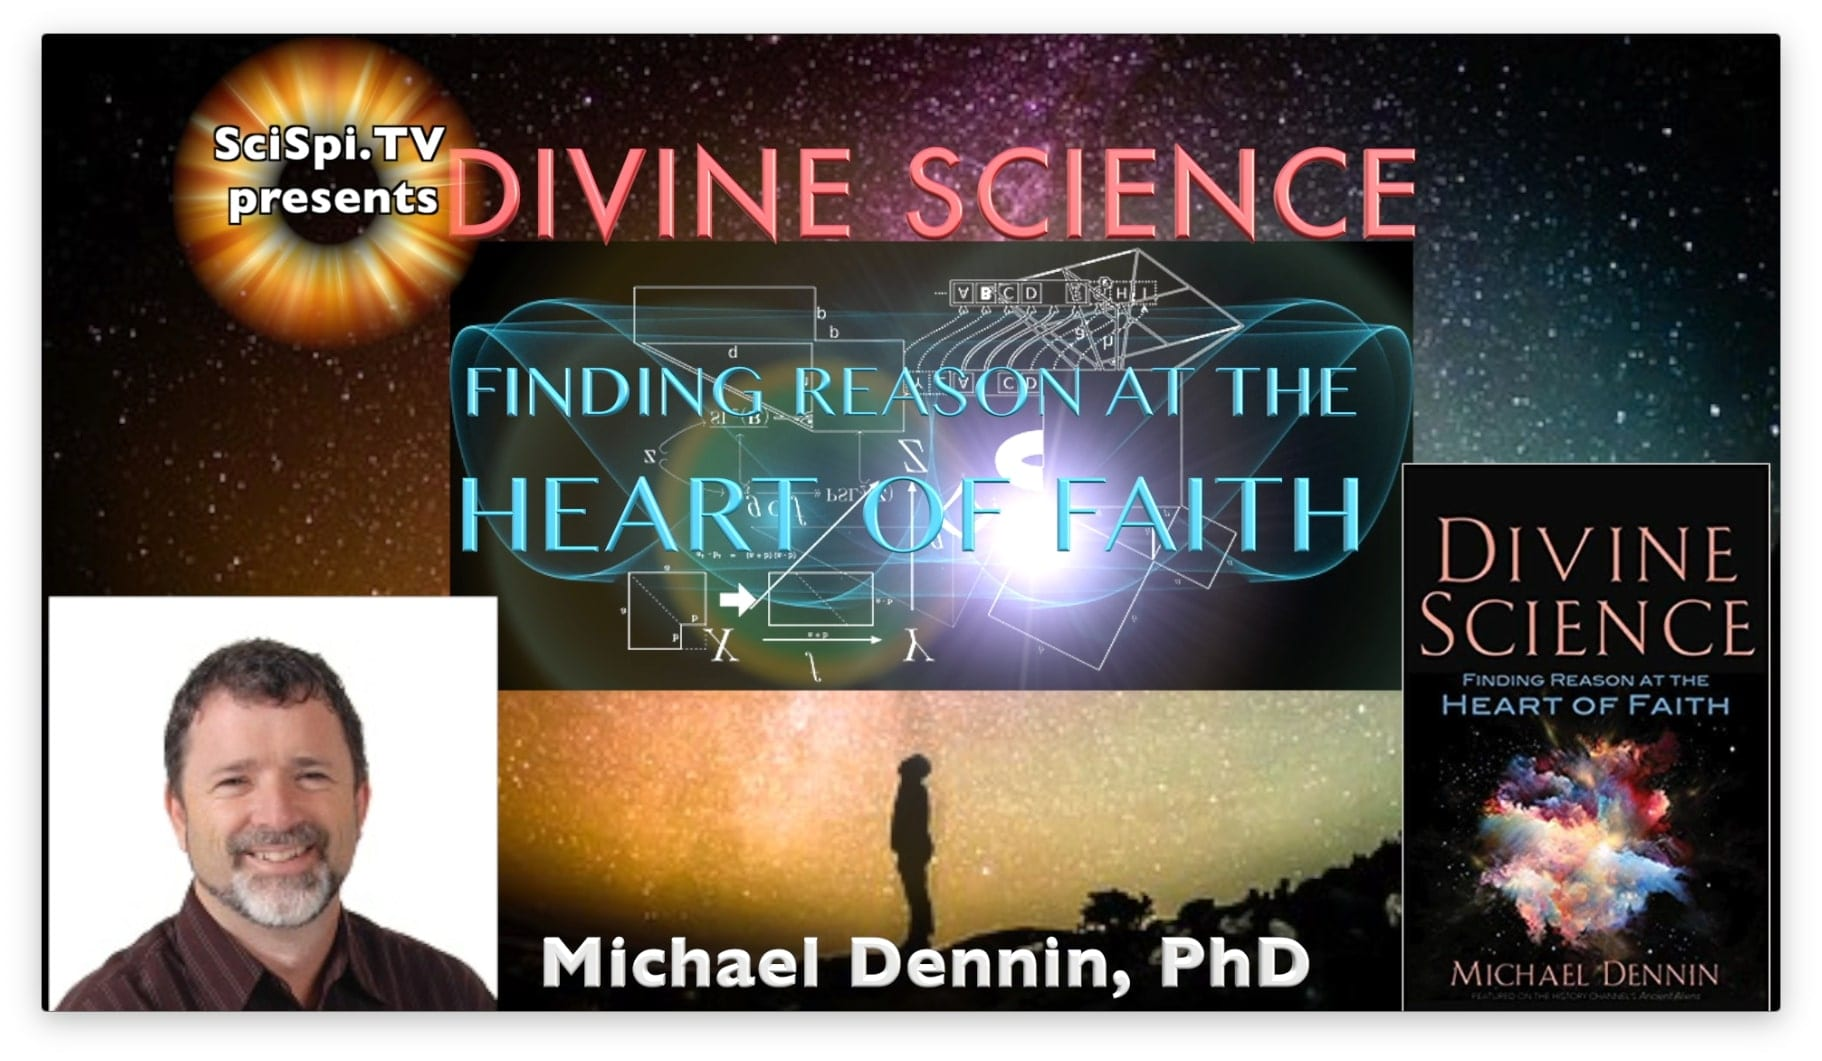 Divine Science Show with Michael Dennin